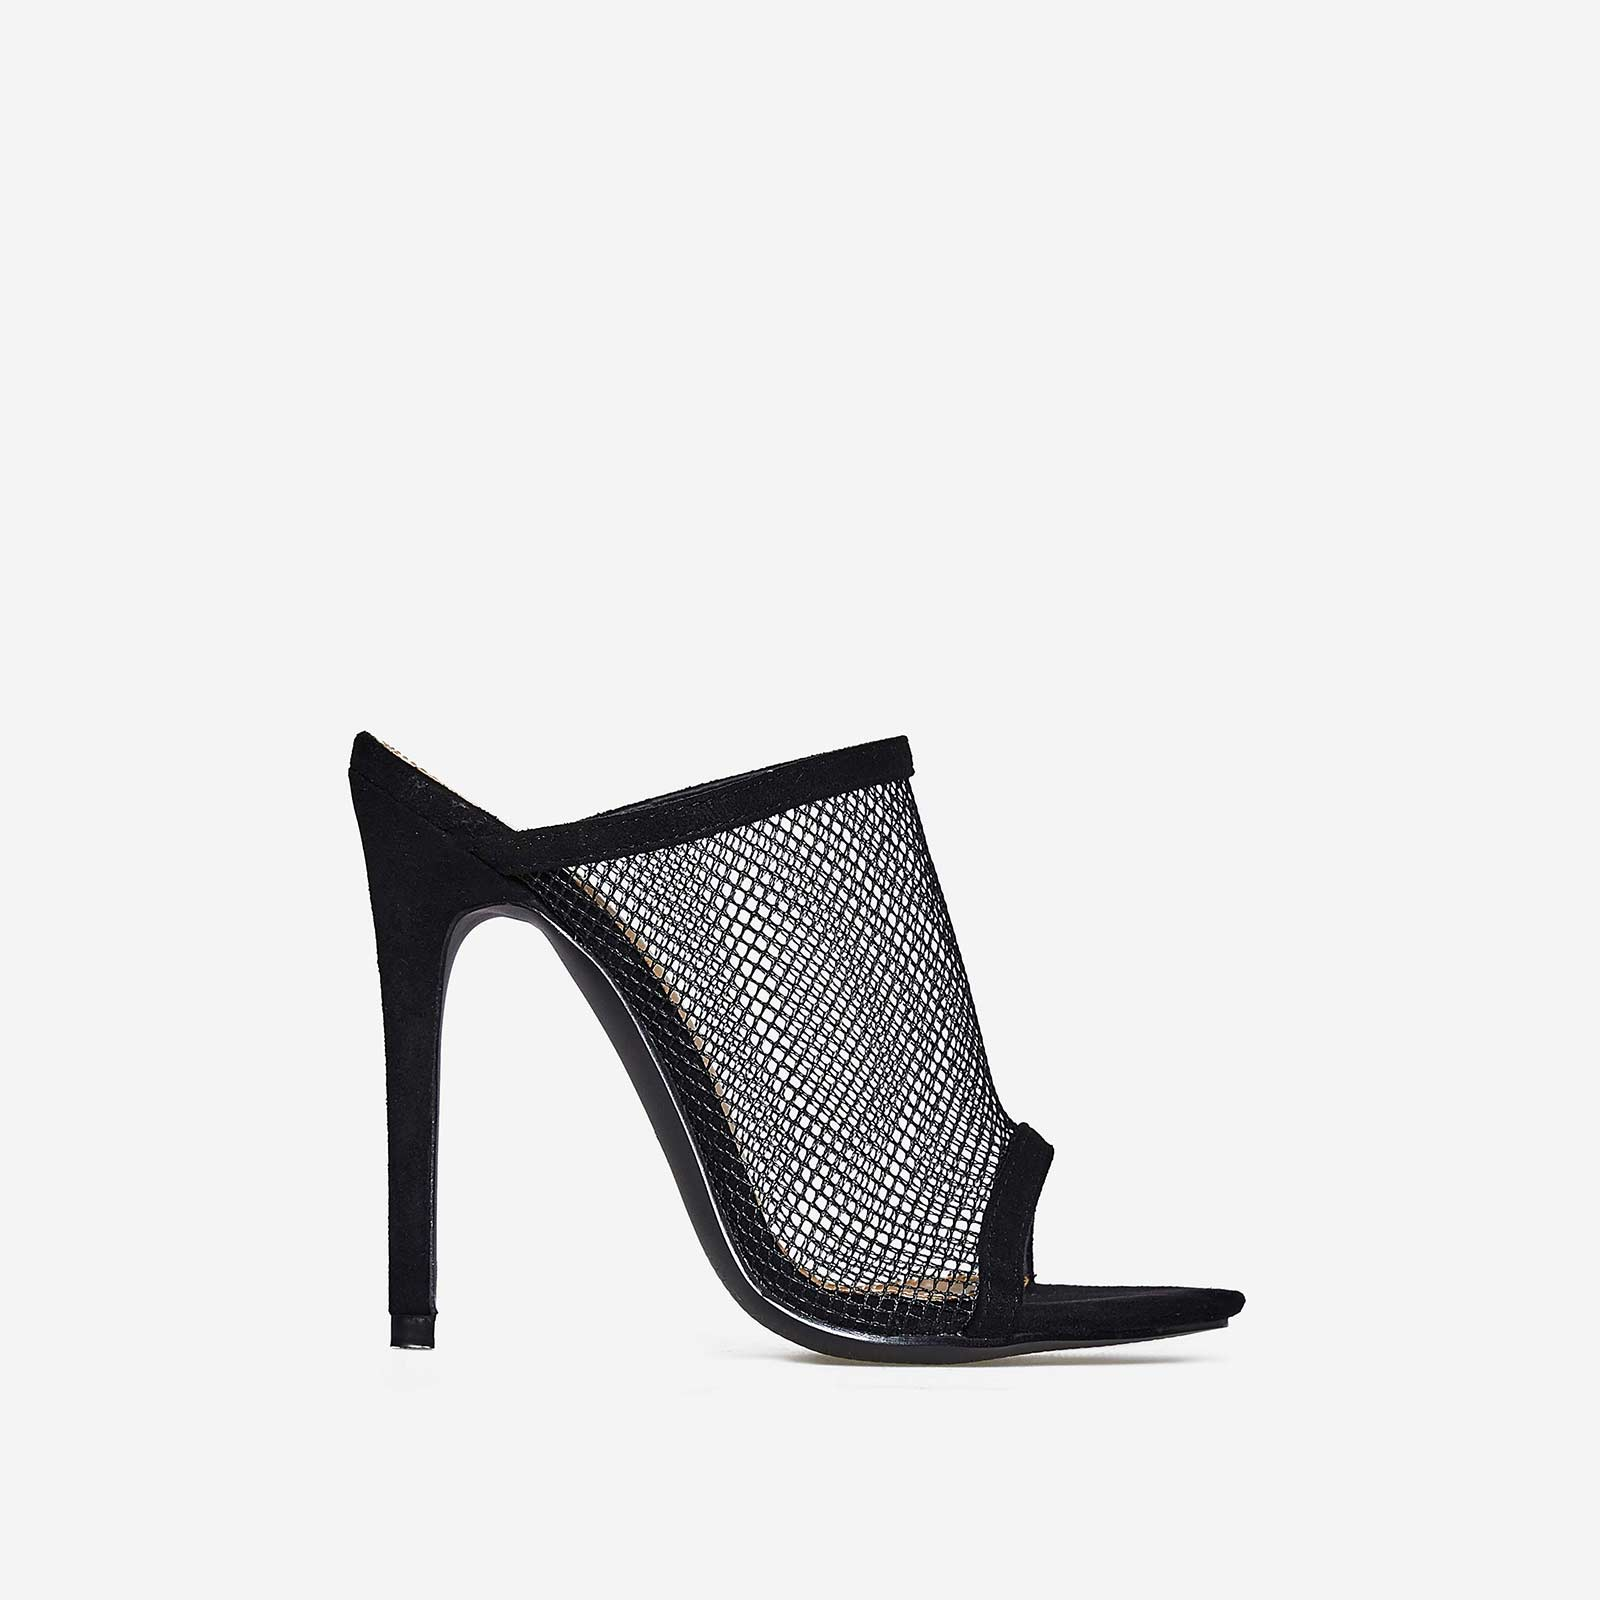 Cardi Fishnet Peep Toe Mule In Black Faux Suede